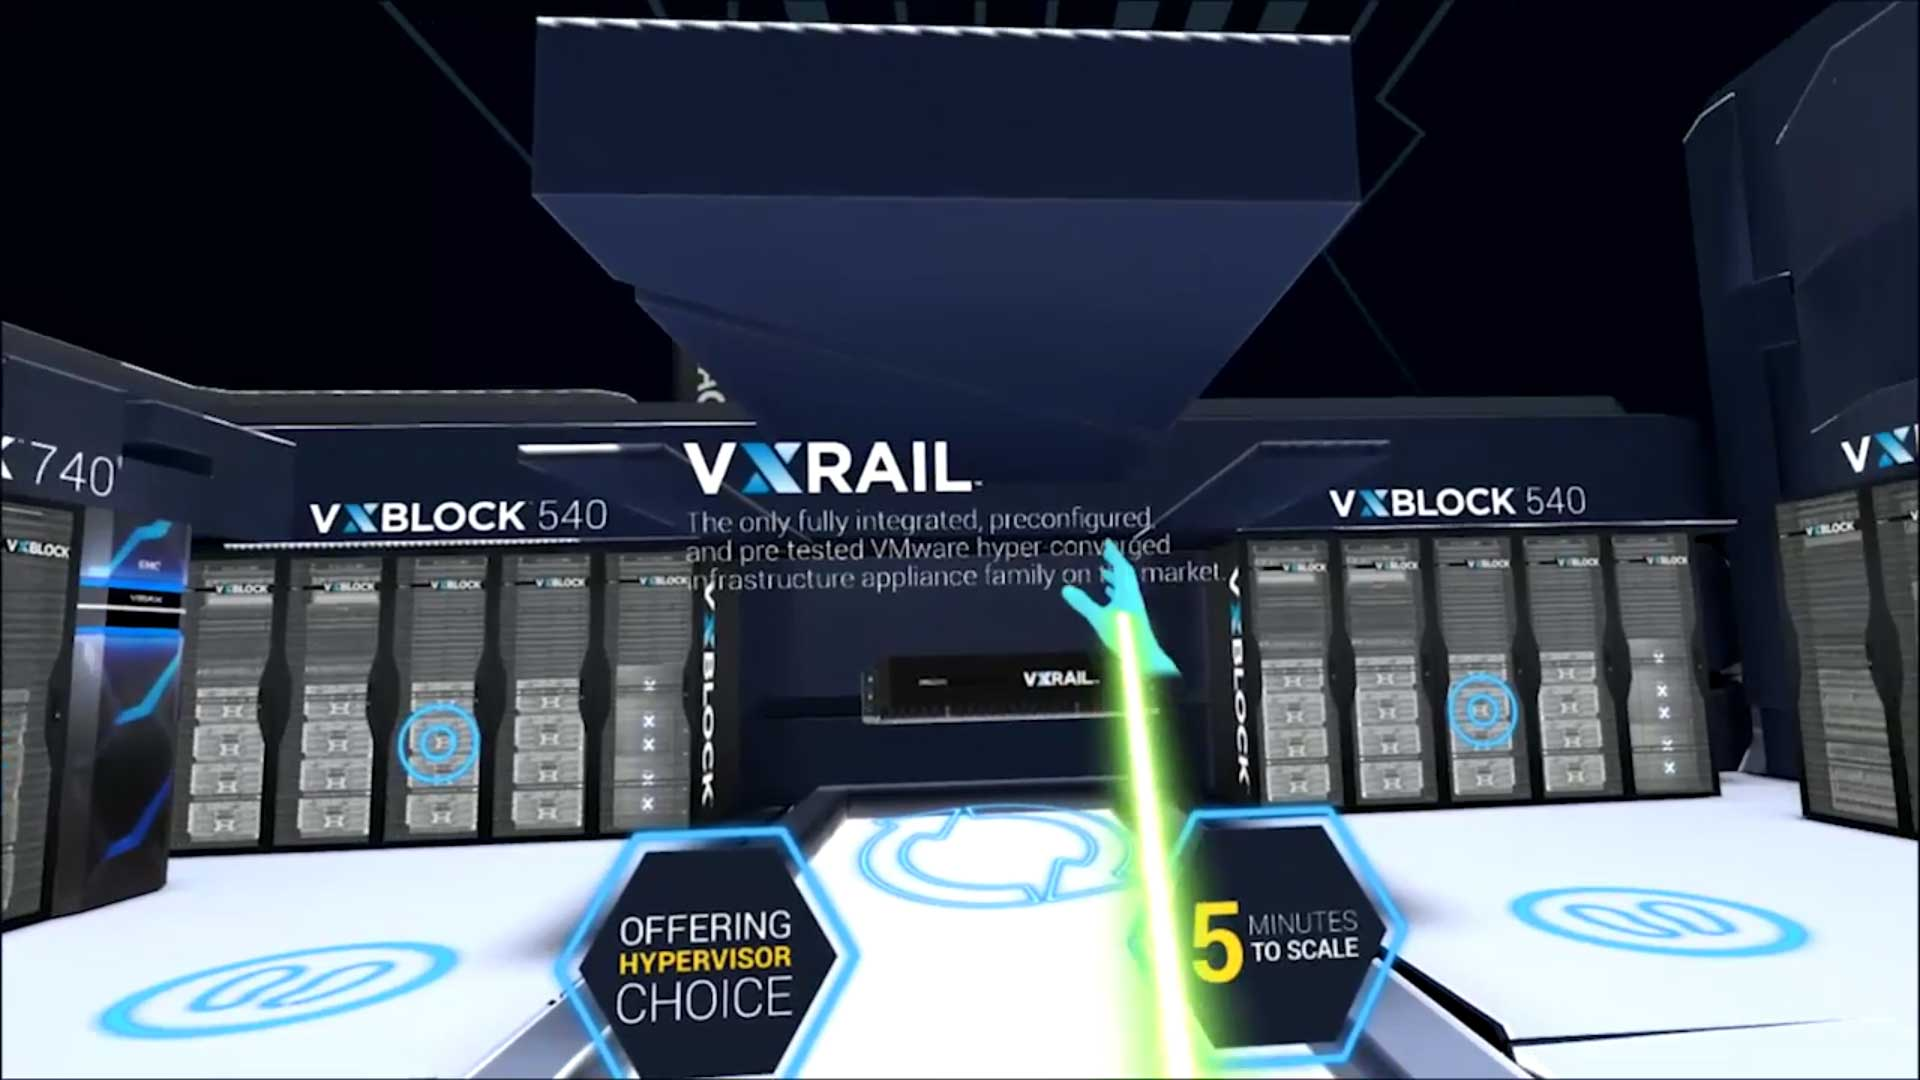 With new update, Kaon moves enterprise virtual reality